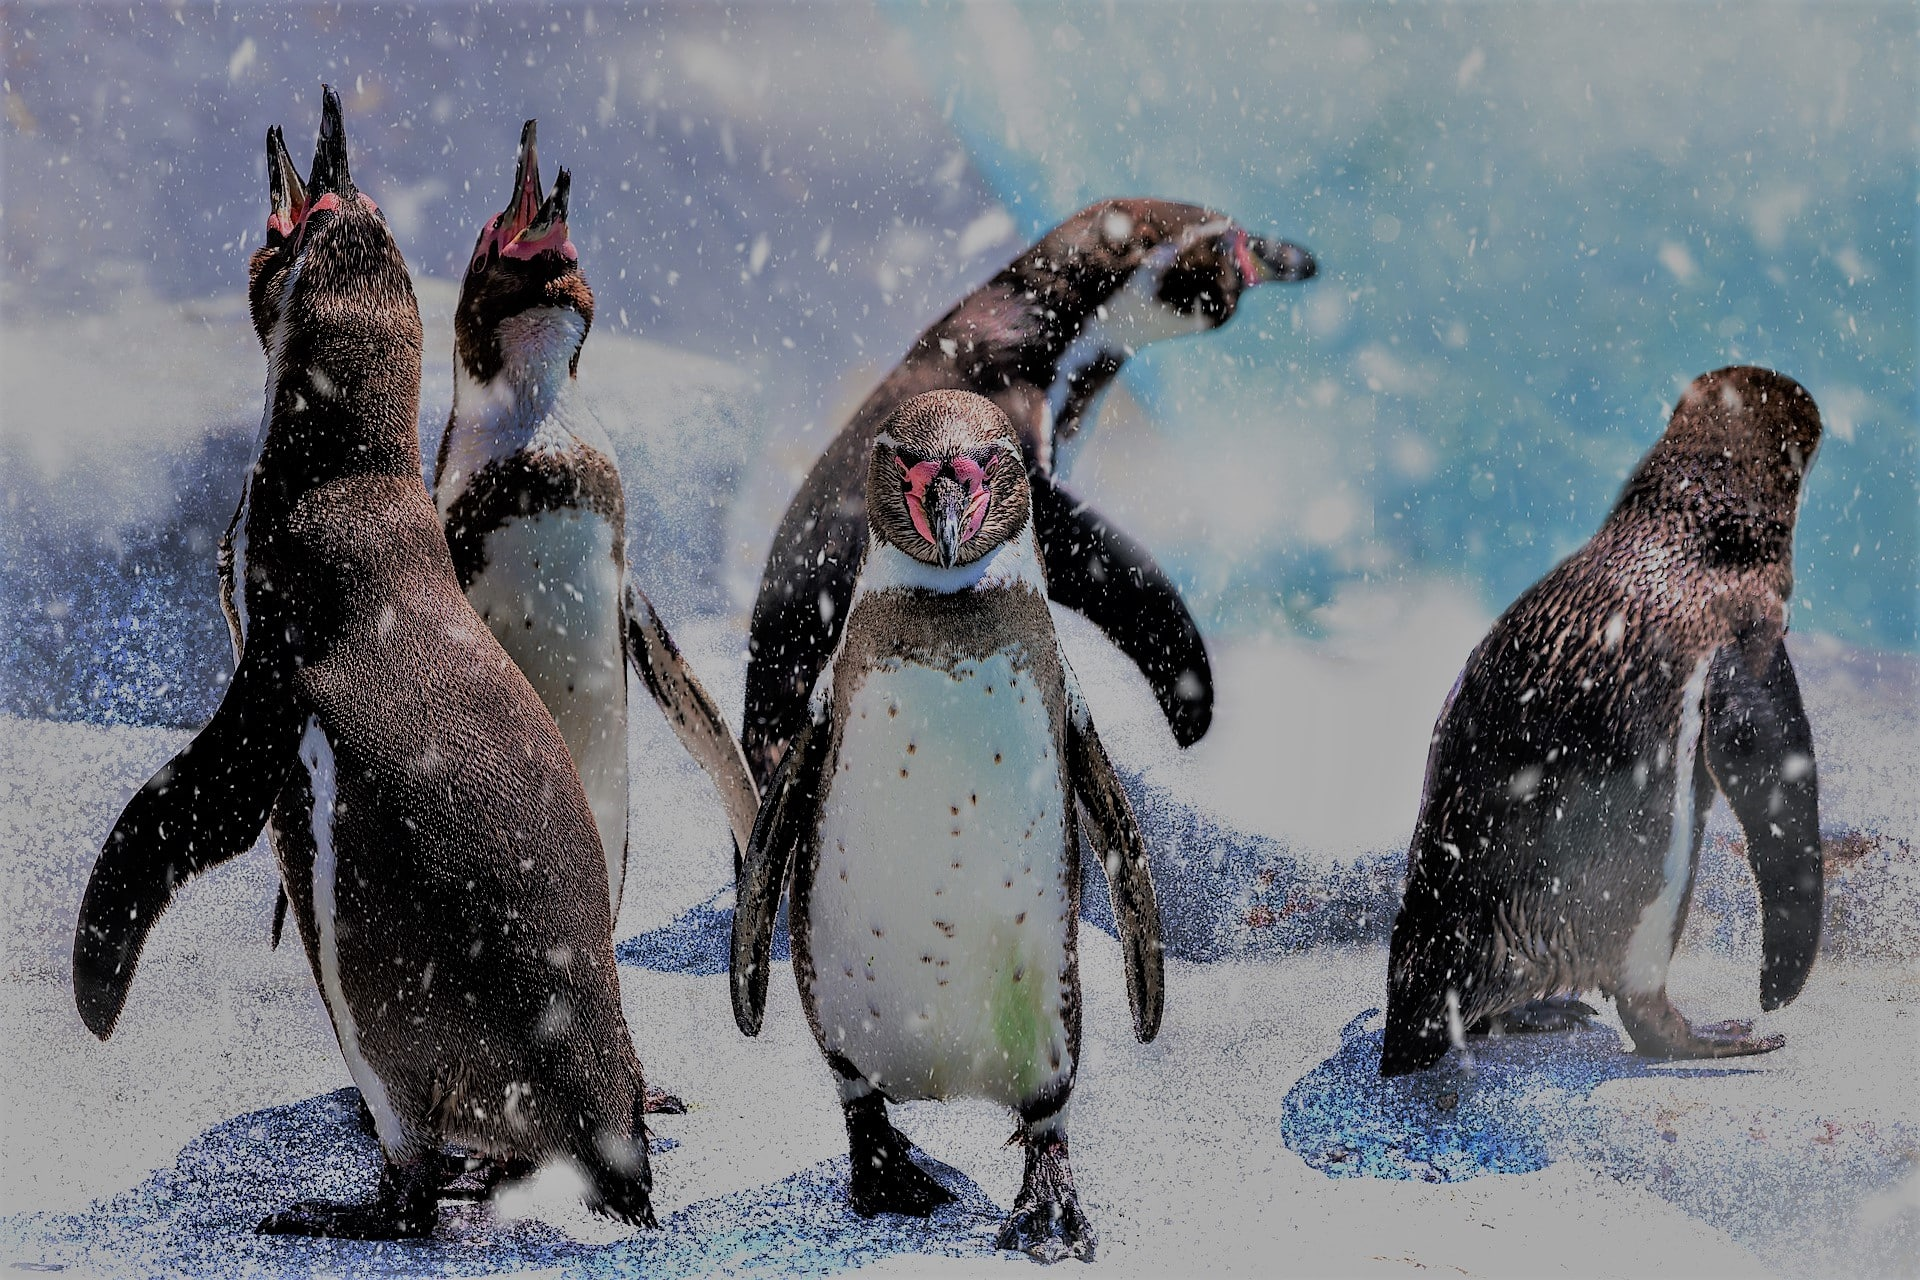 Five penguins on ice. Two penguins mouths open as they catch snow.